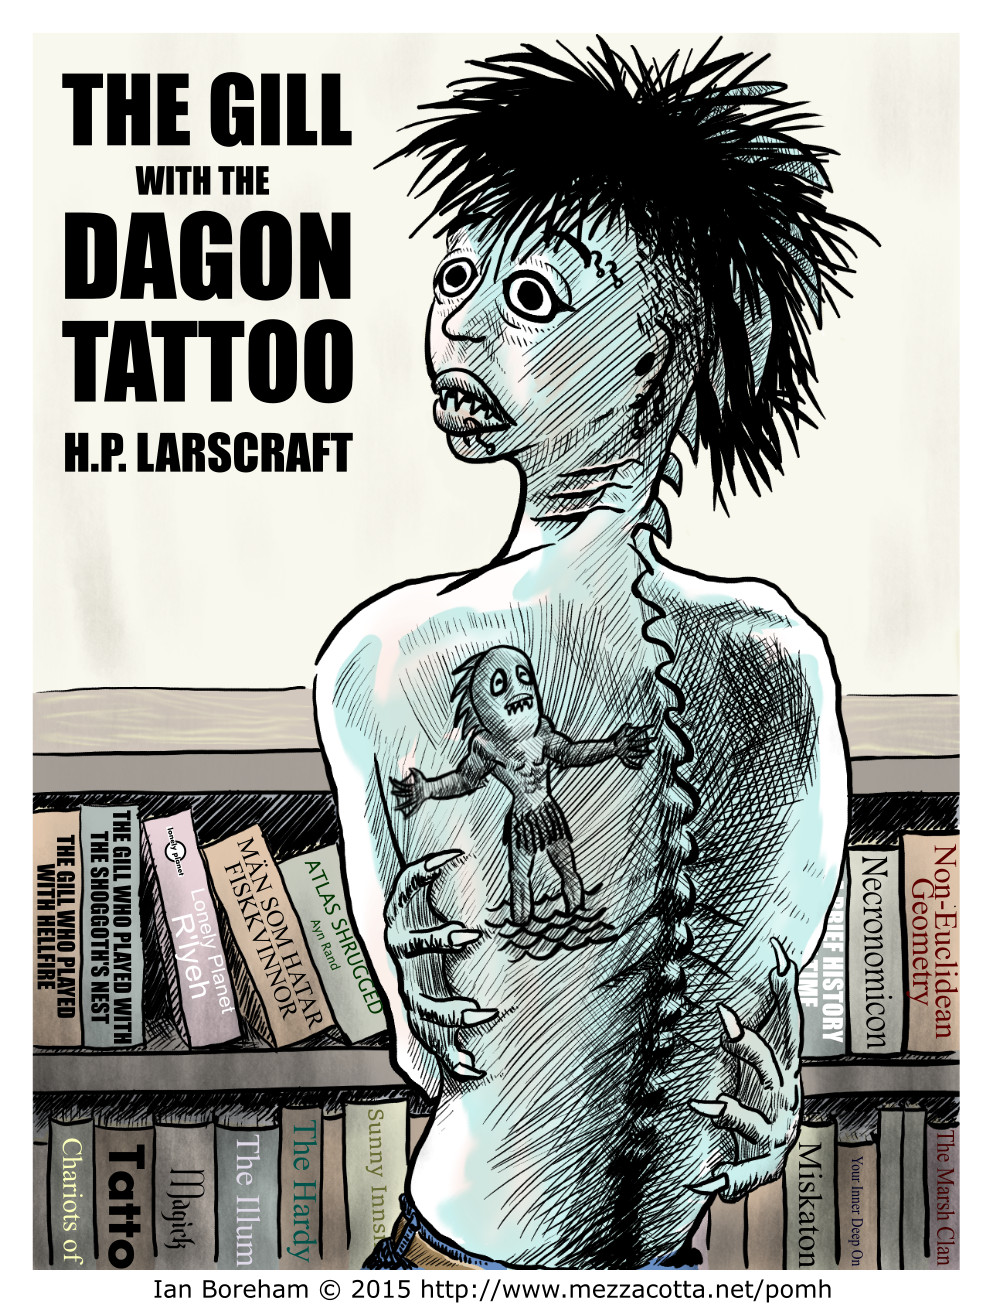 The Gill with the Dagon Tattoo